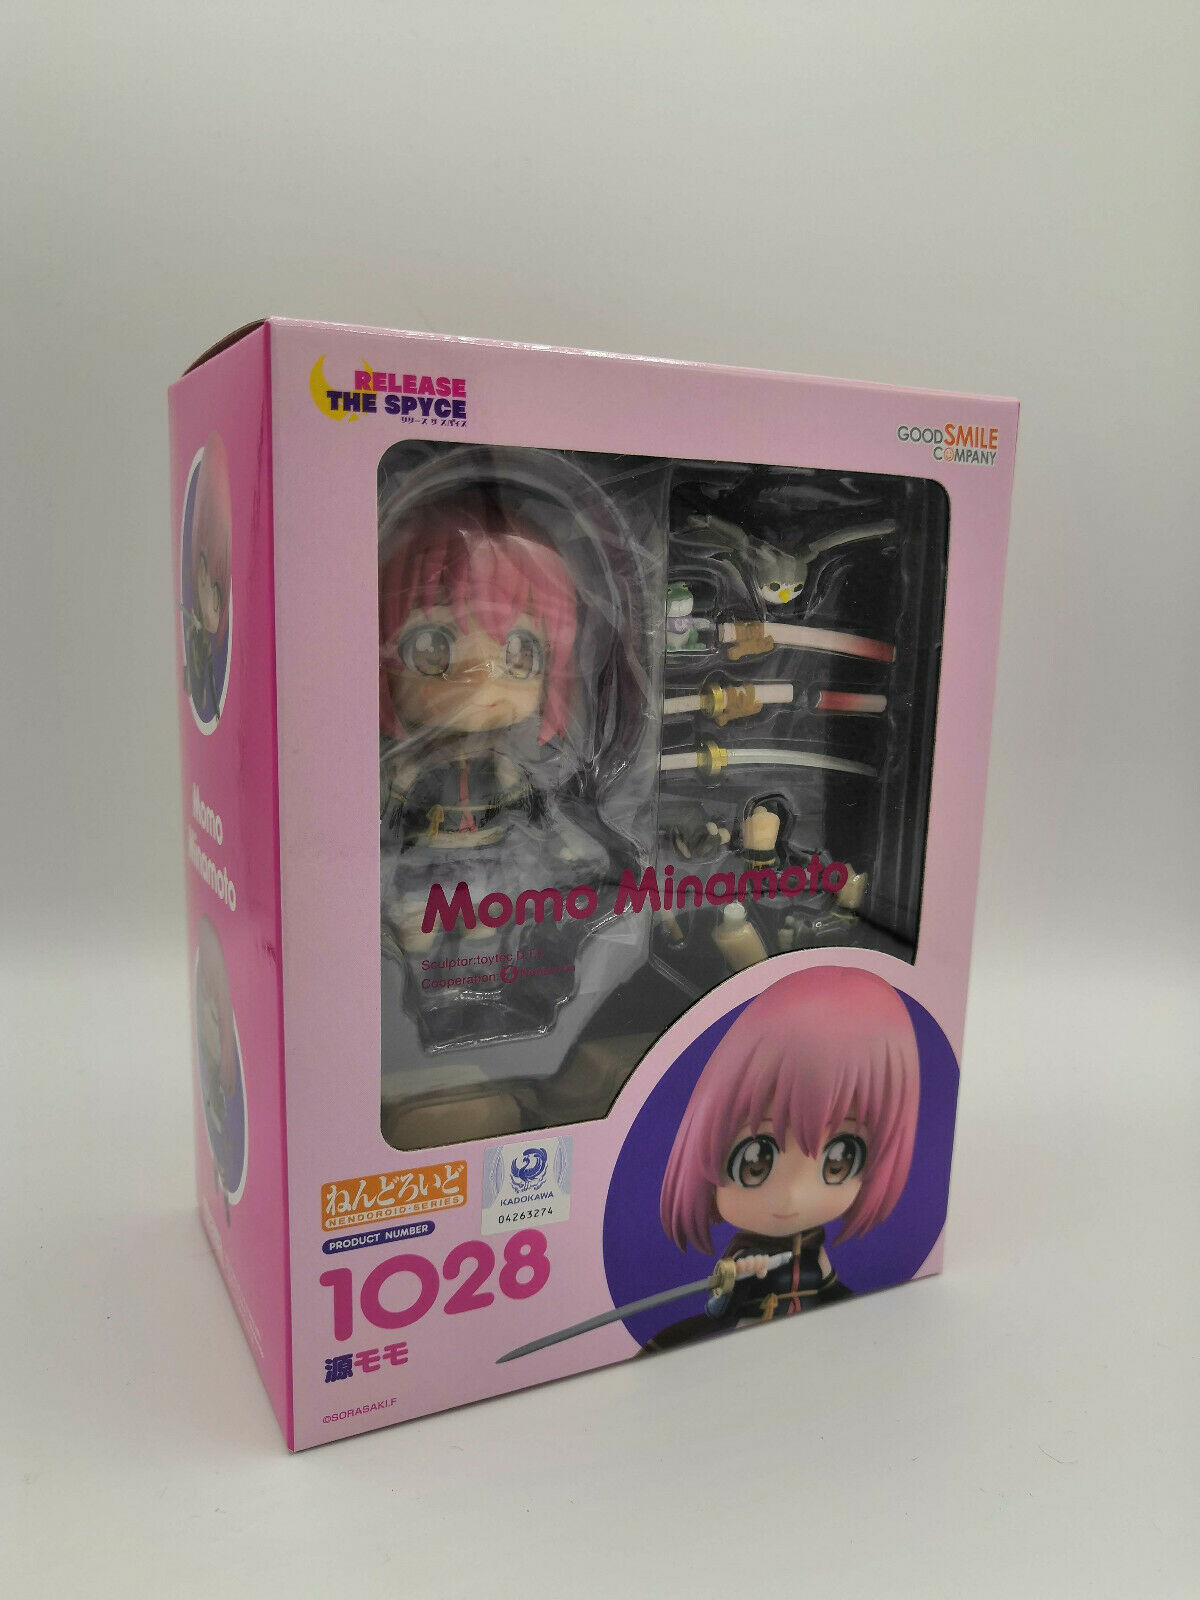 Release the Spyce NendGoldid Action Figure Momo Minamoto Good Smile Company BNIB